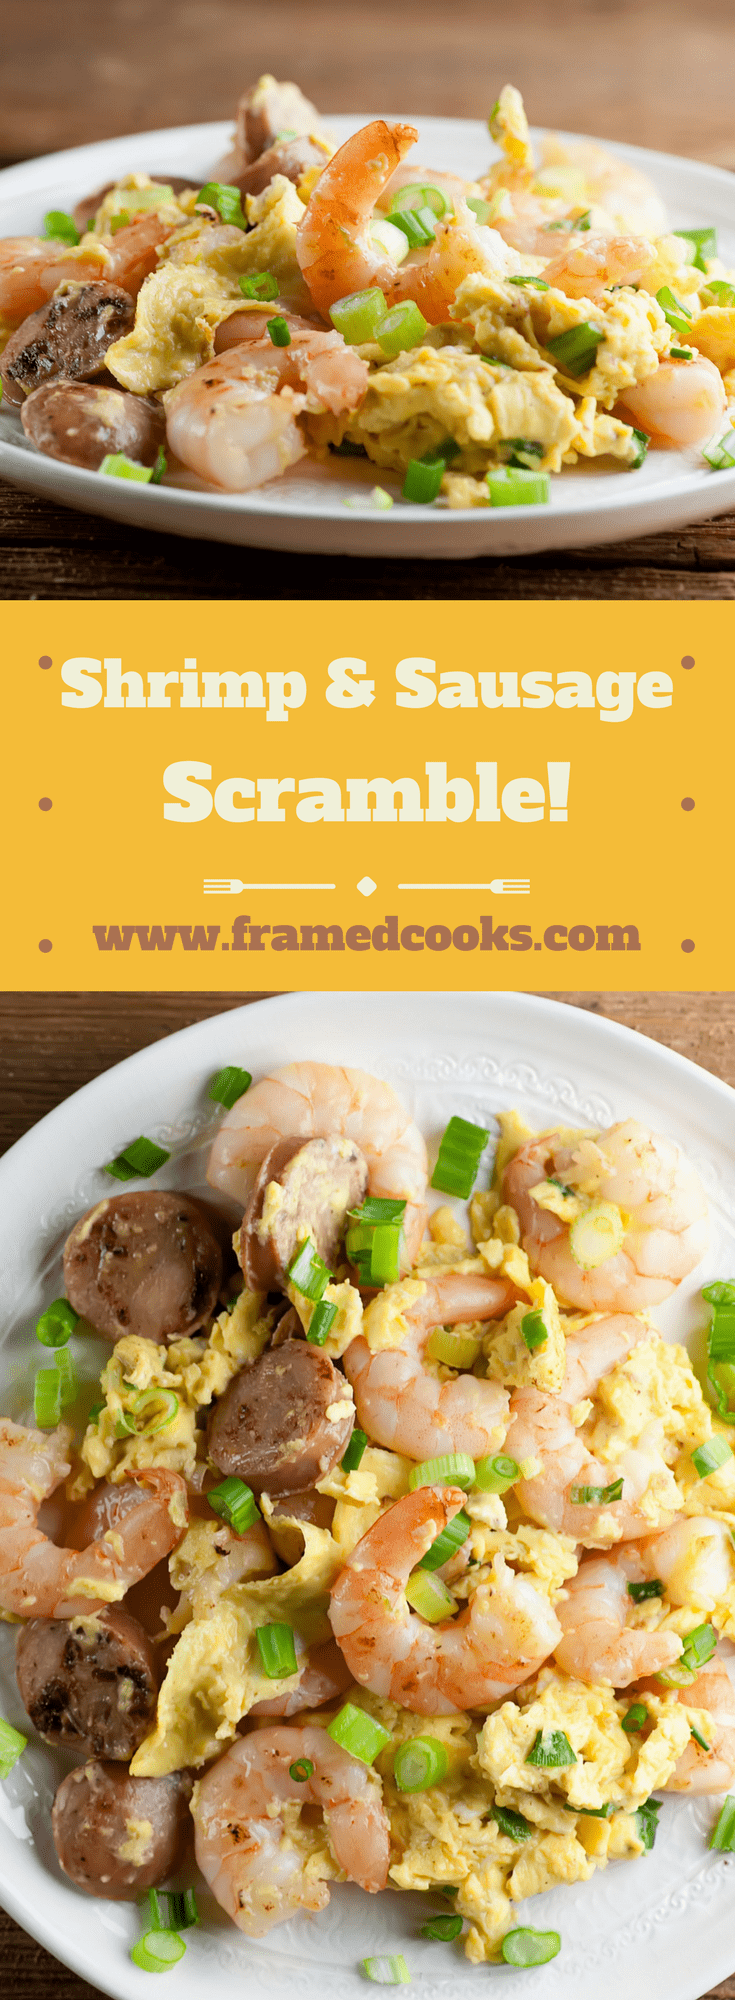 Shrimp and Sausage Scramble - Framed Cooks